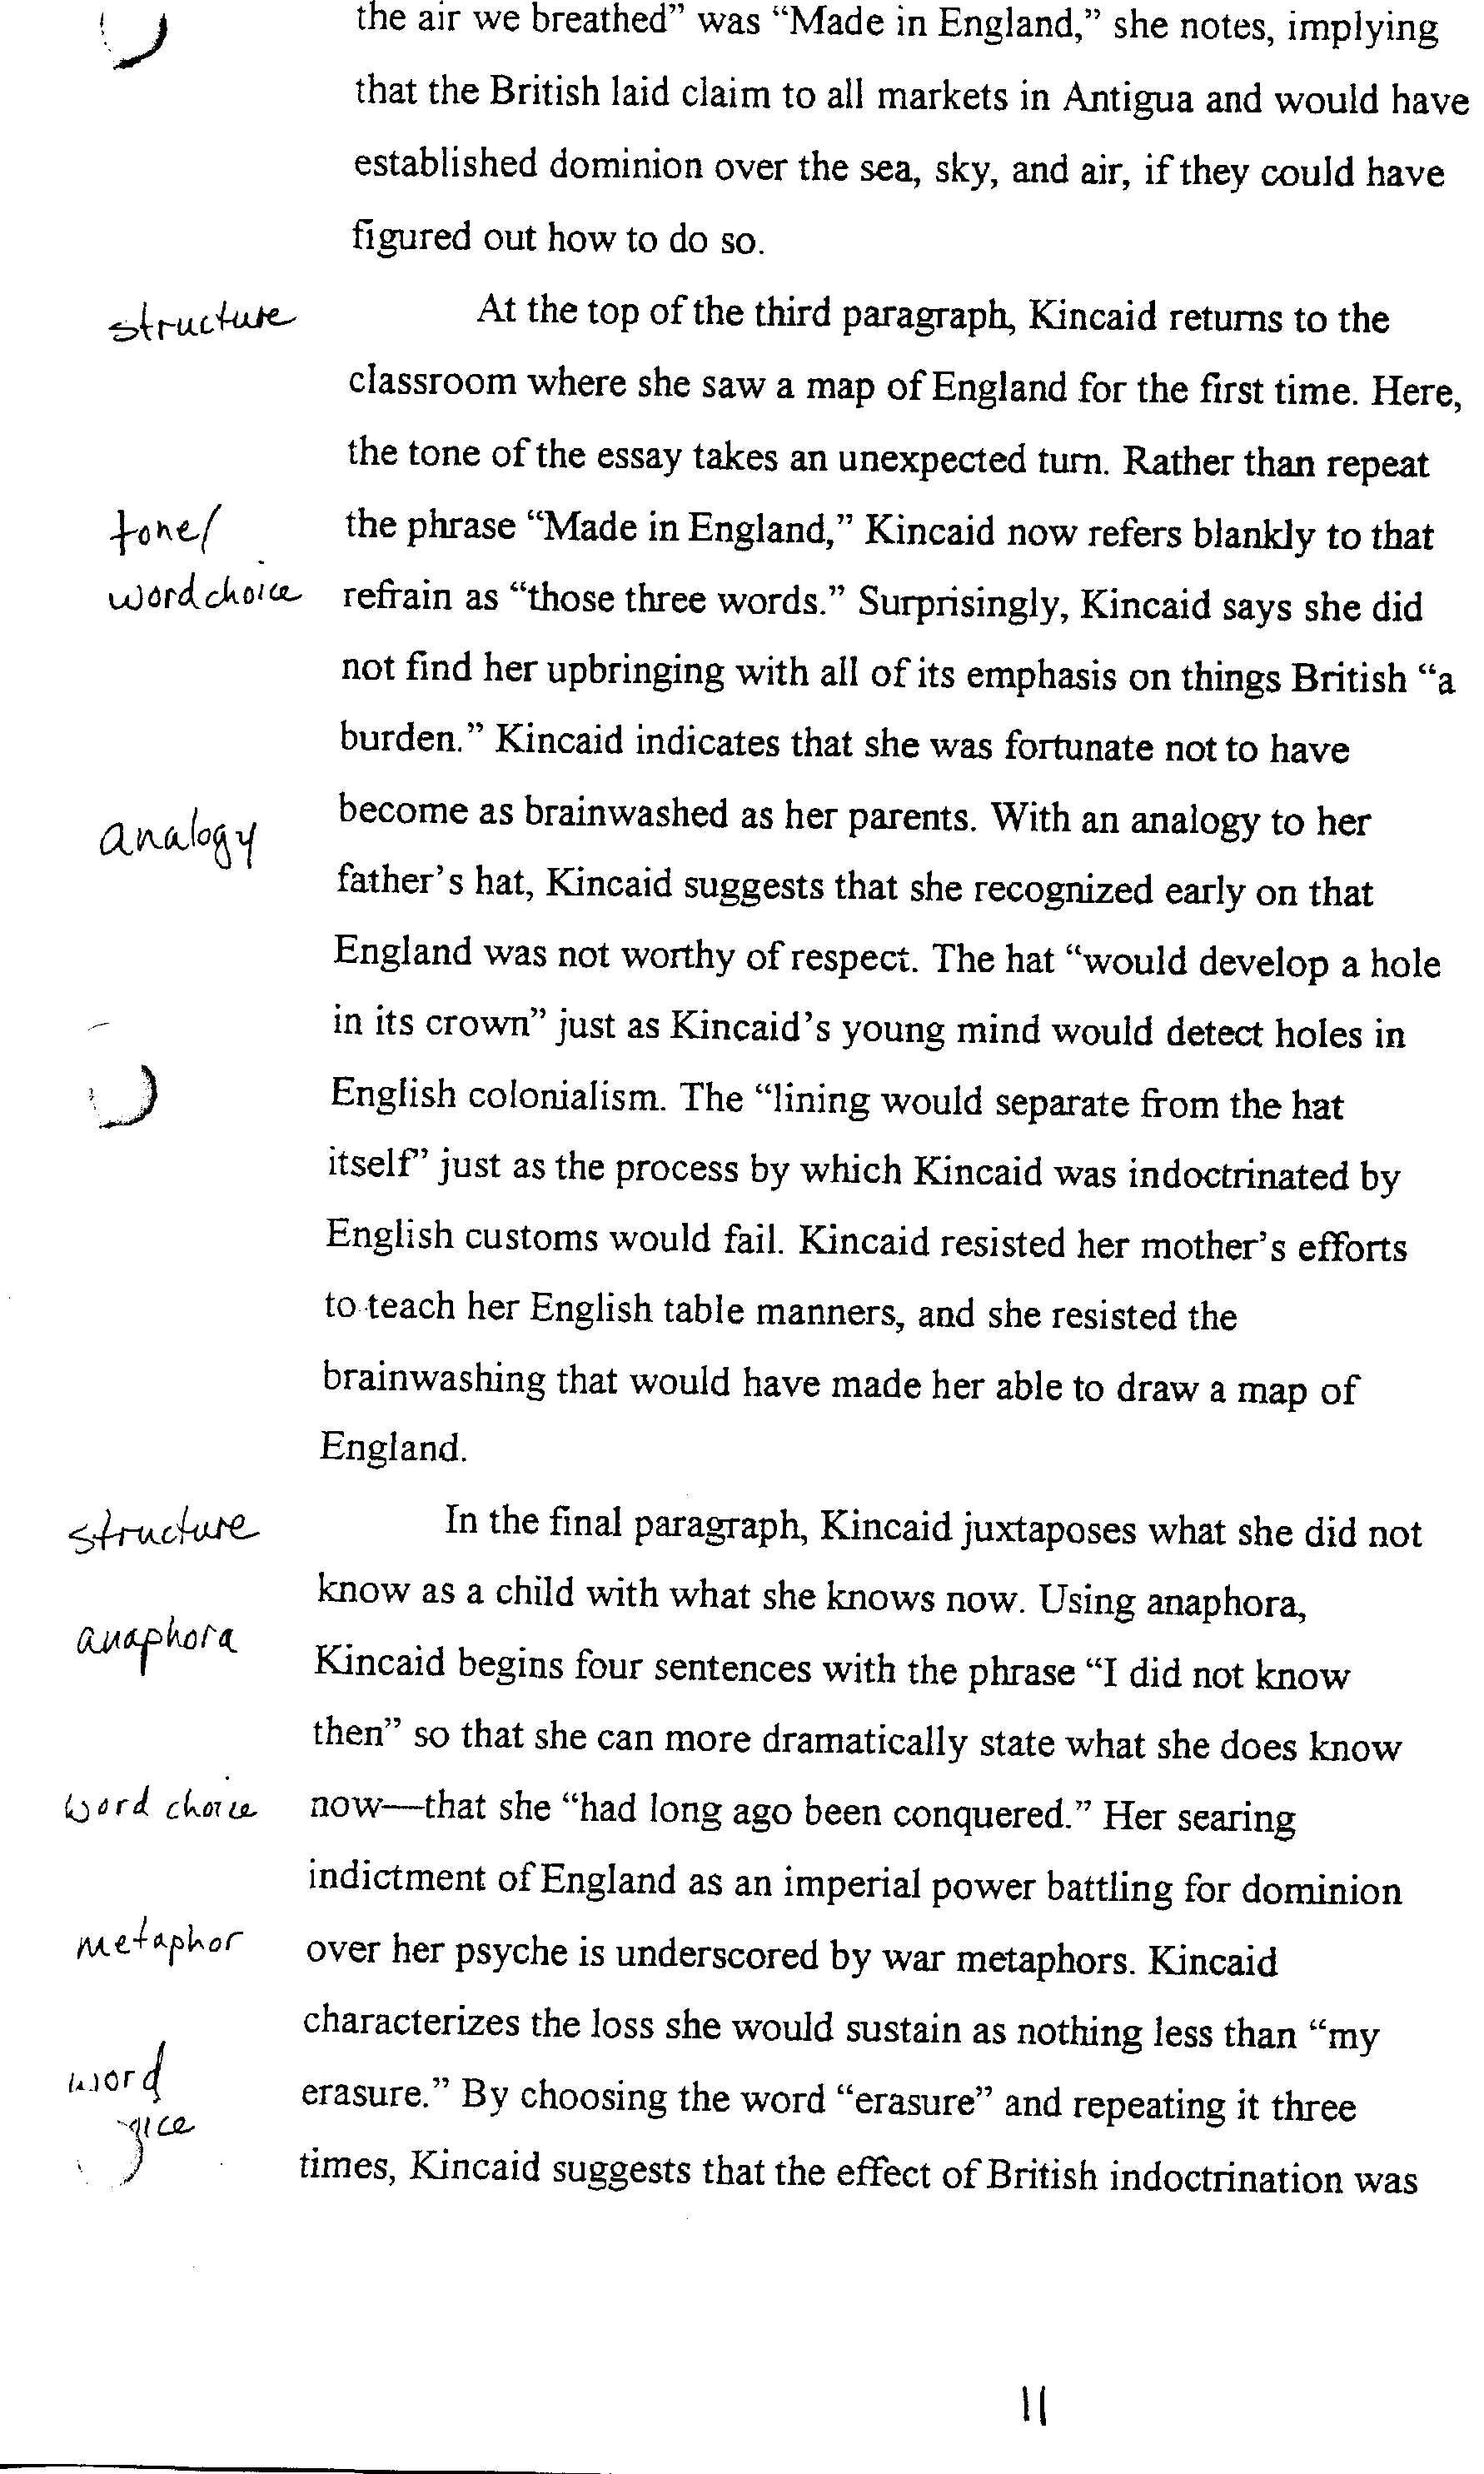 003 Rhetorical Essay Example Writing Analysis Write Useful How To On An Outline Image Sat Ap